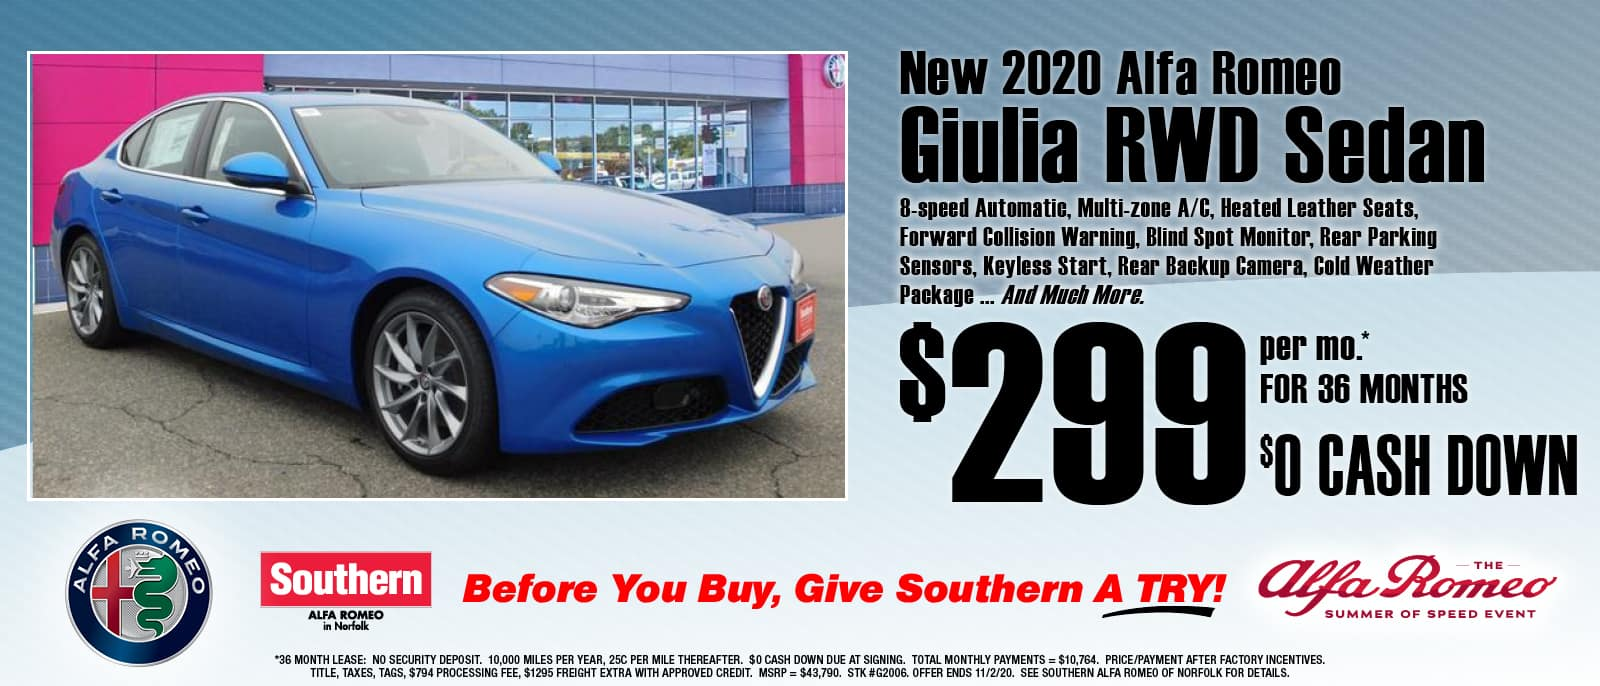 Southern Alfa Romeo Website Slide